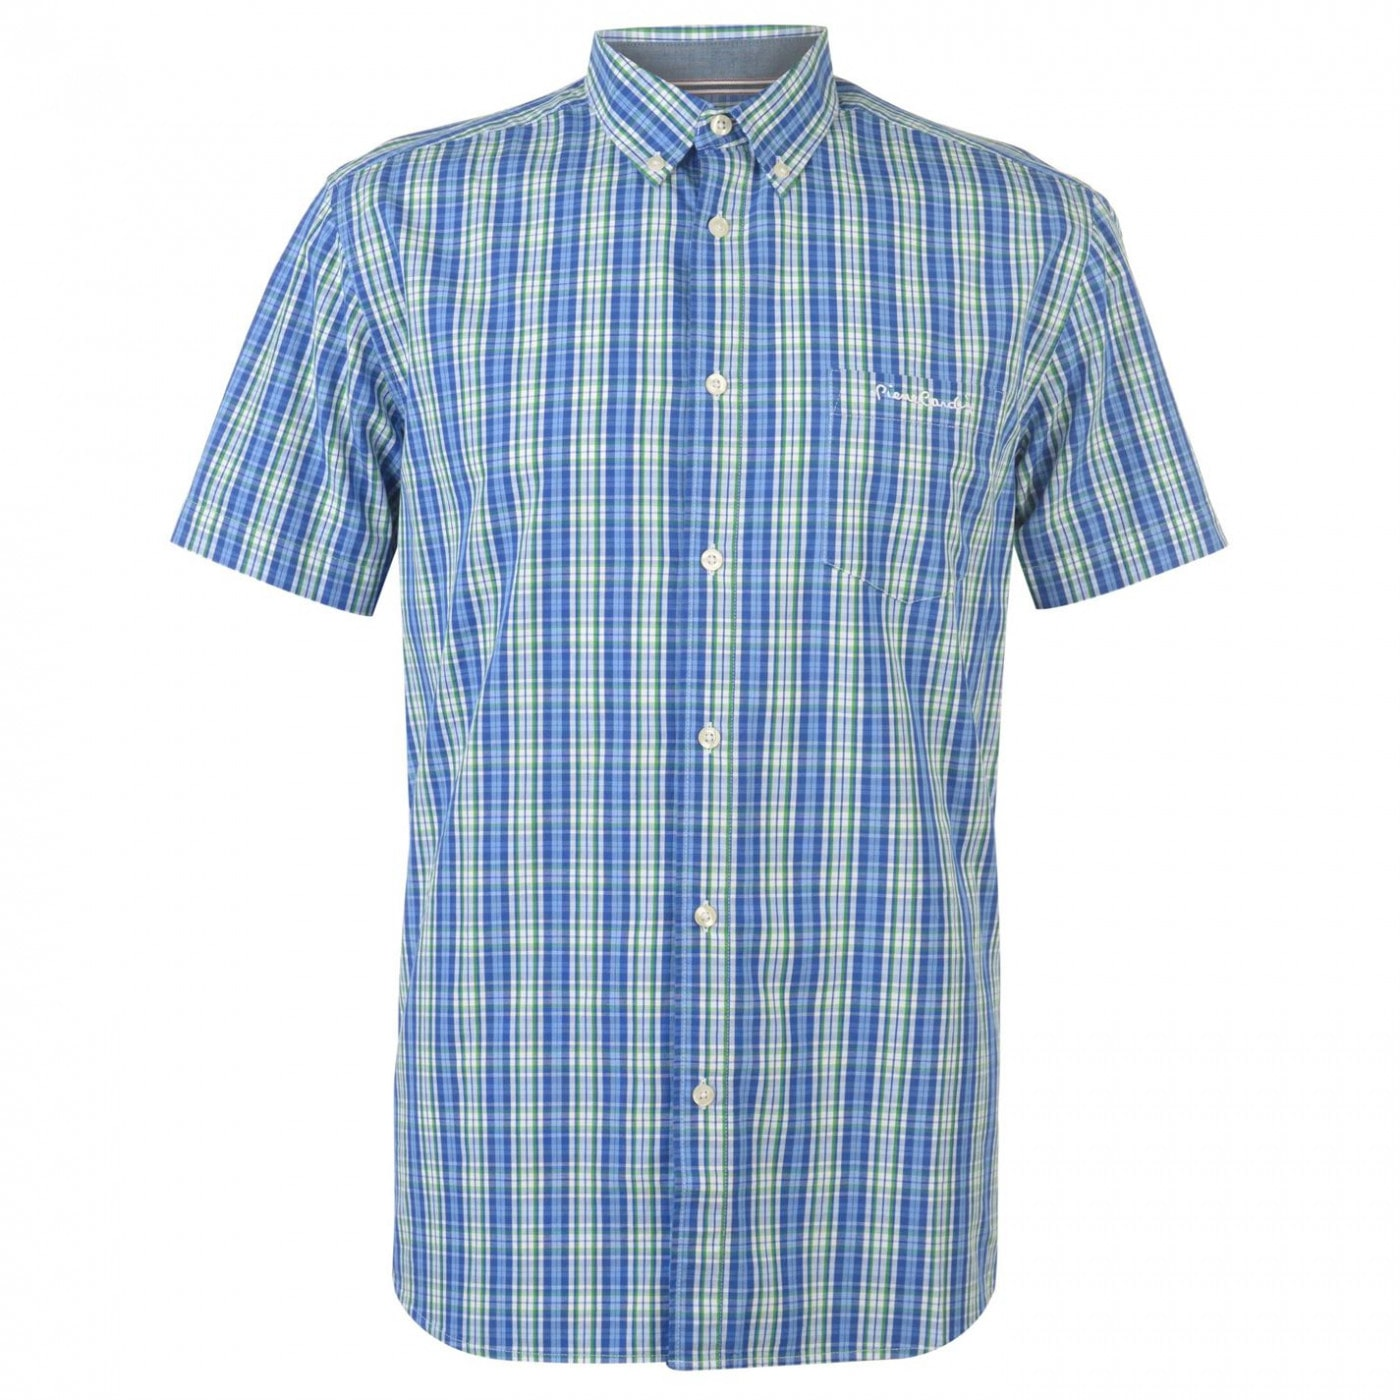 Pierre Cardin Short Sleeve Check Button Shirt Mens